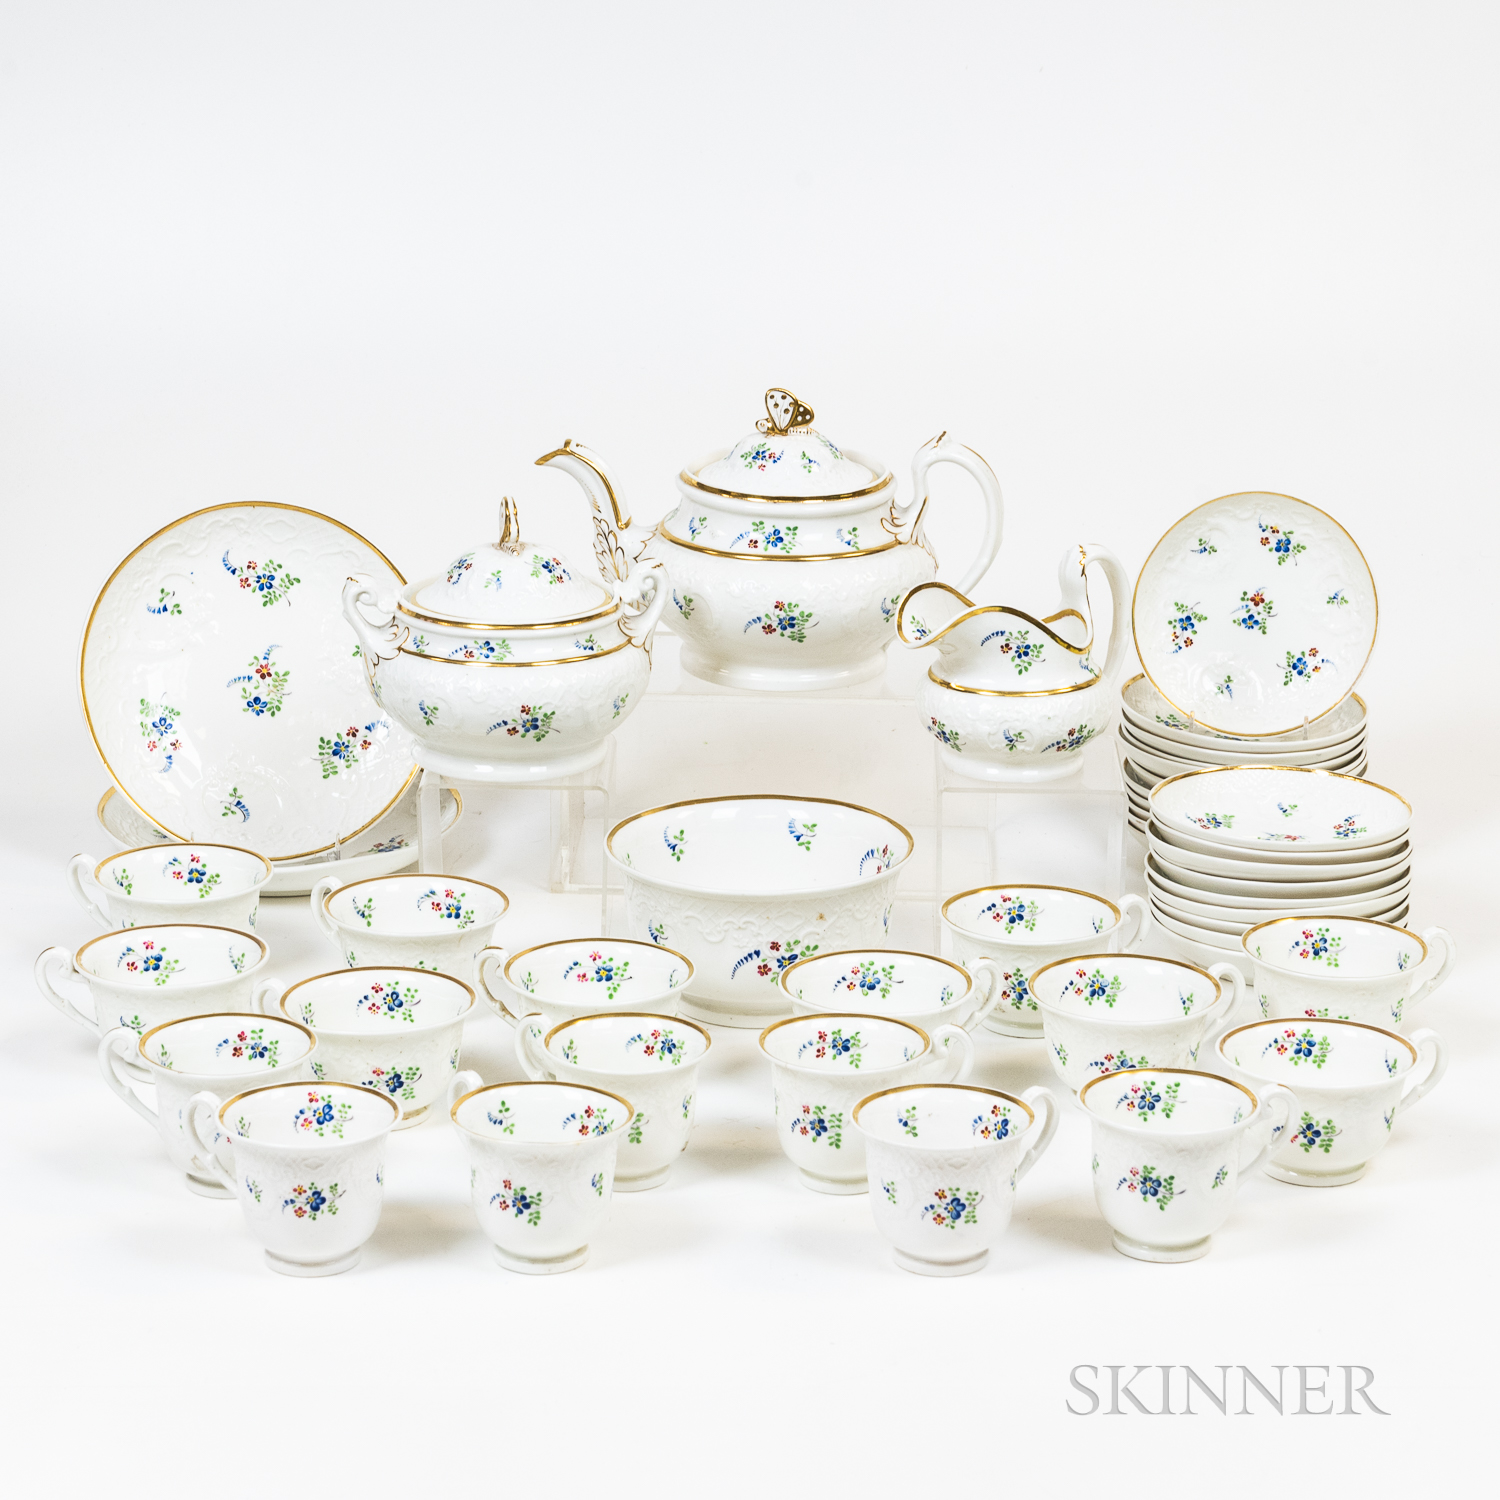 English Floral-and Gilt-decorated Tableware